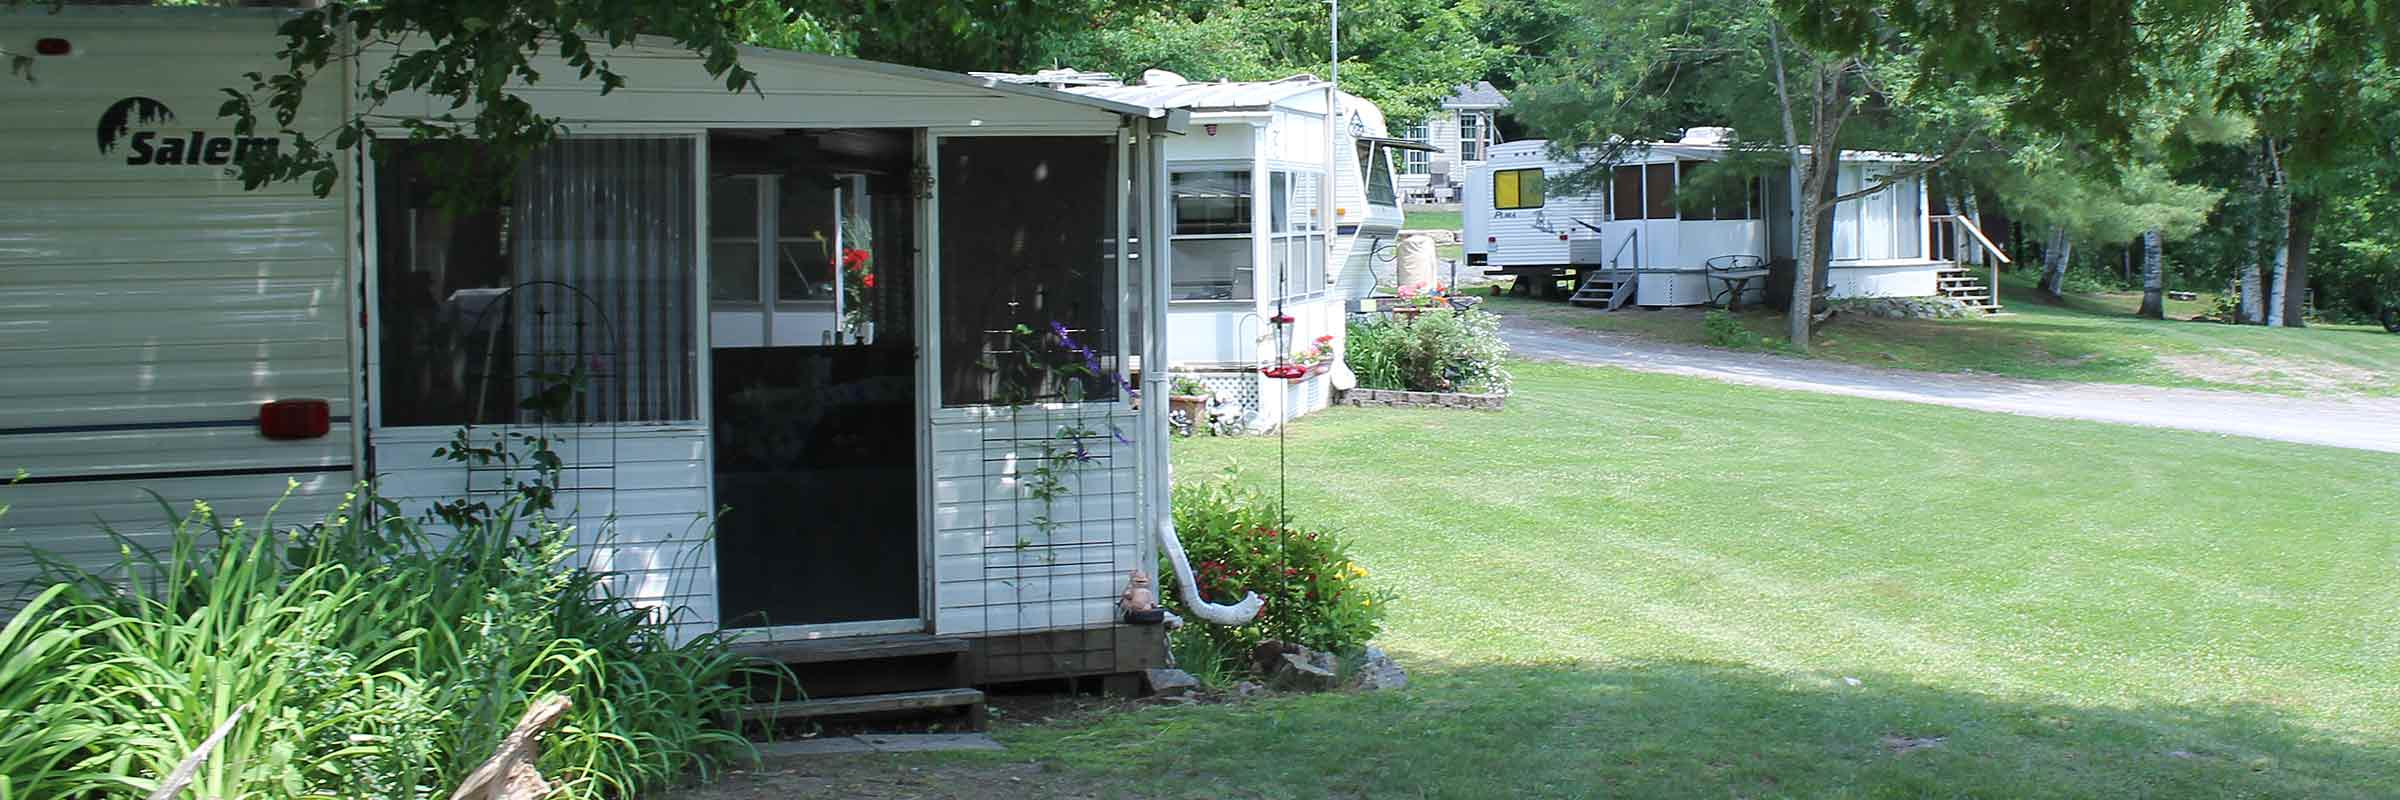 Several trailer sites in White Lake in the Pickerel Bay Lodge Campground